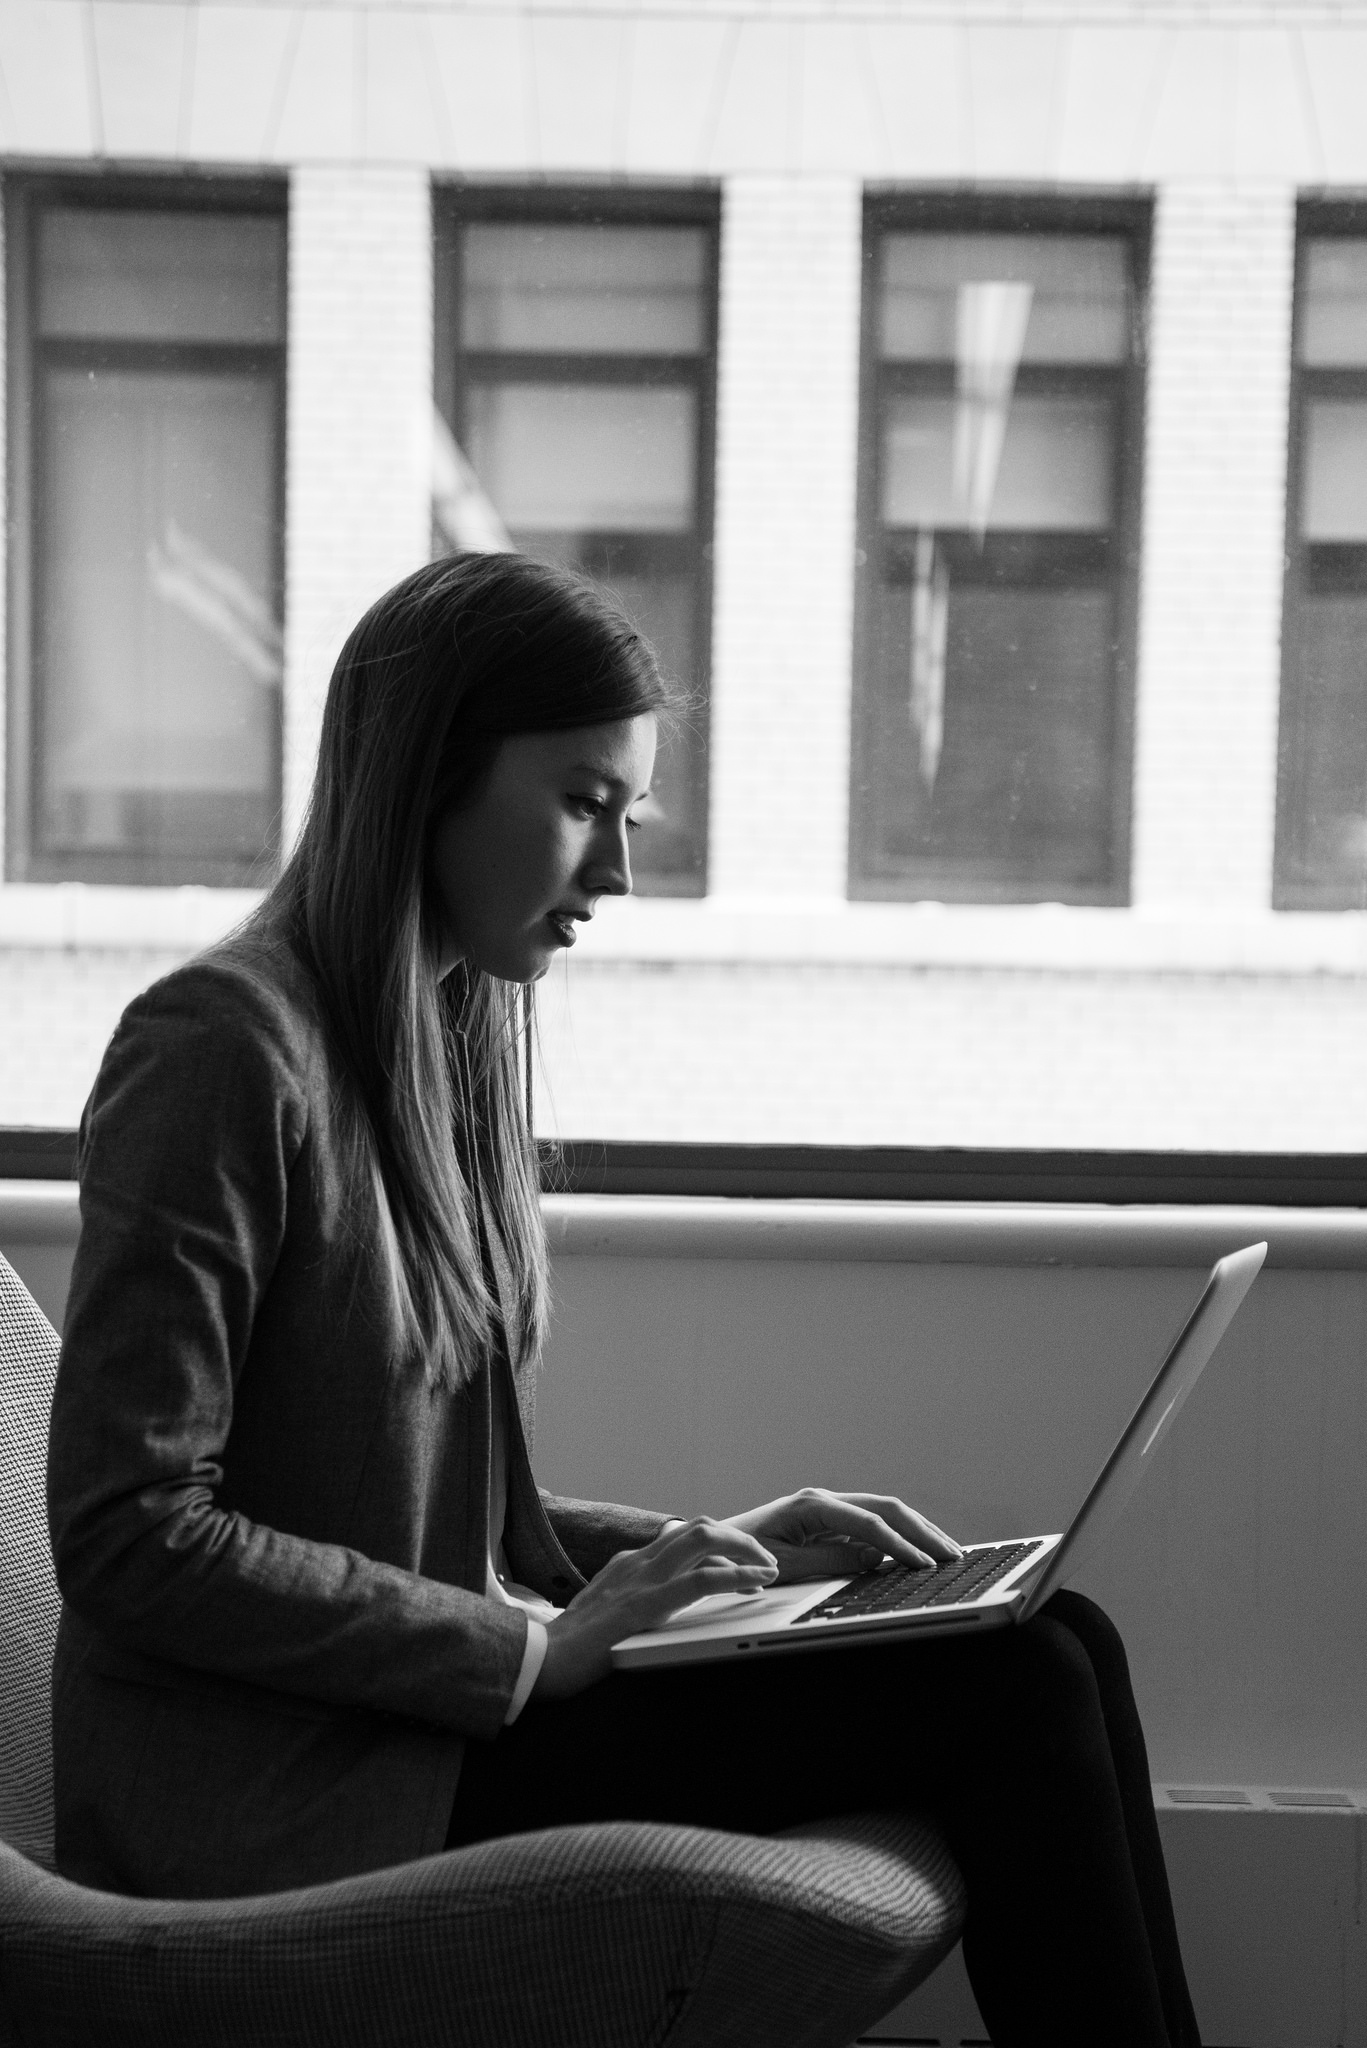 Image of a woman seated with laptop next to a window.